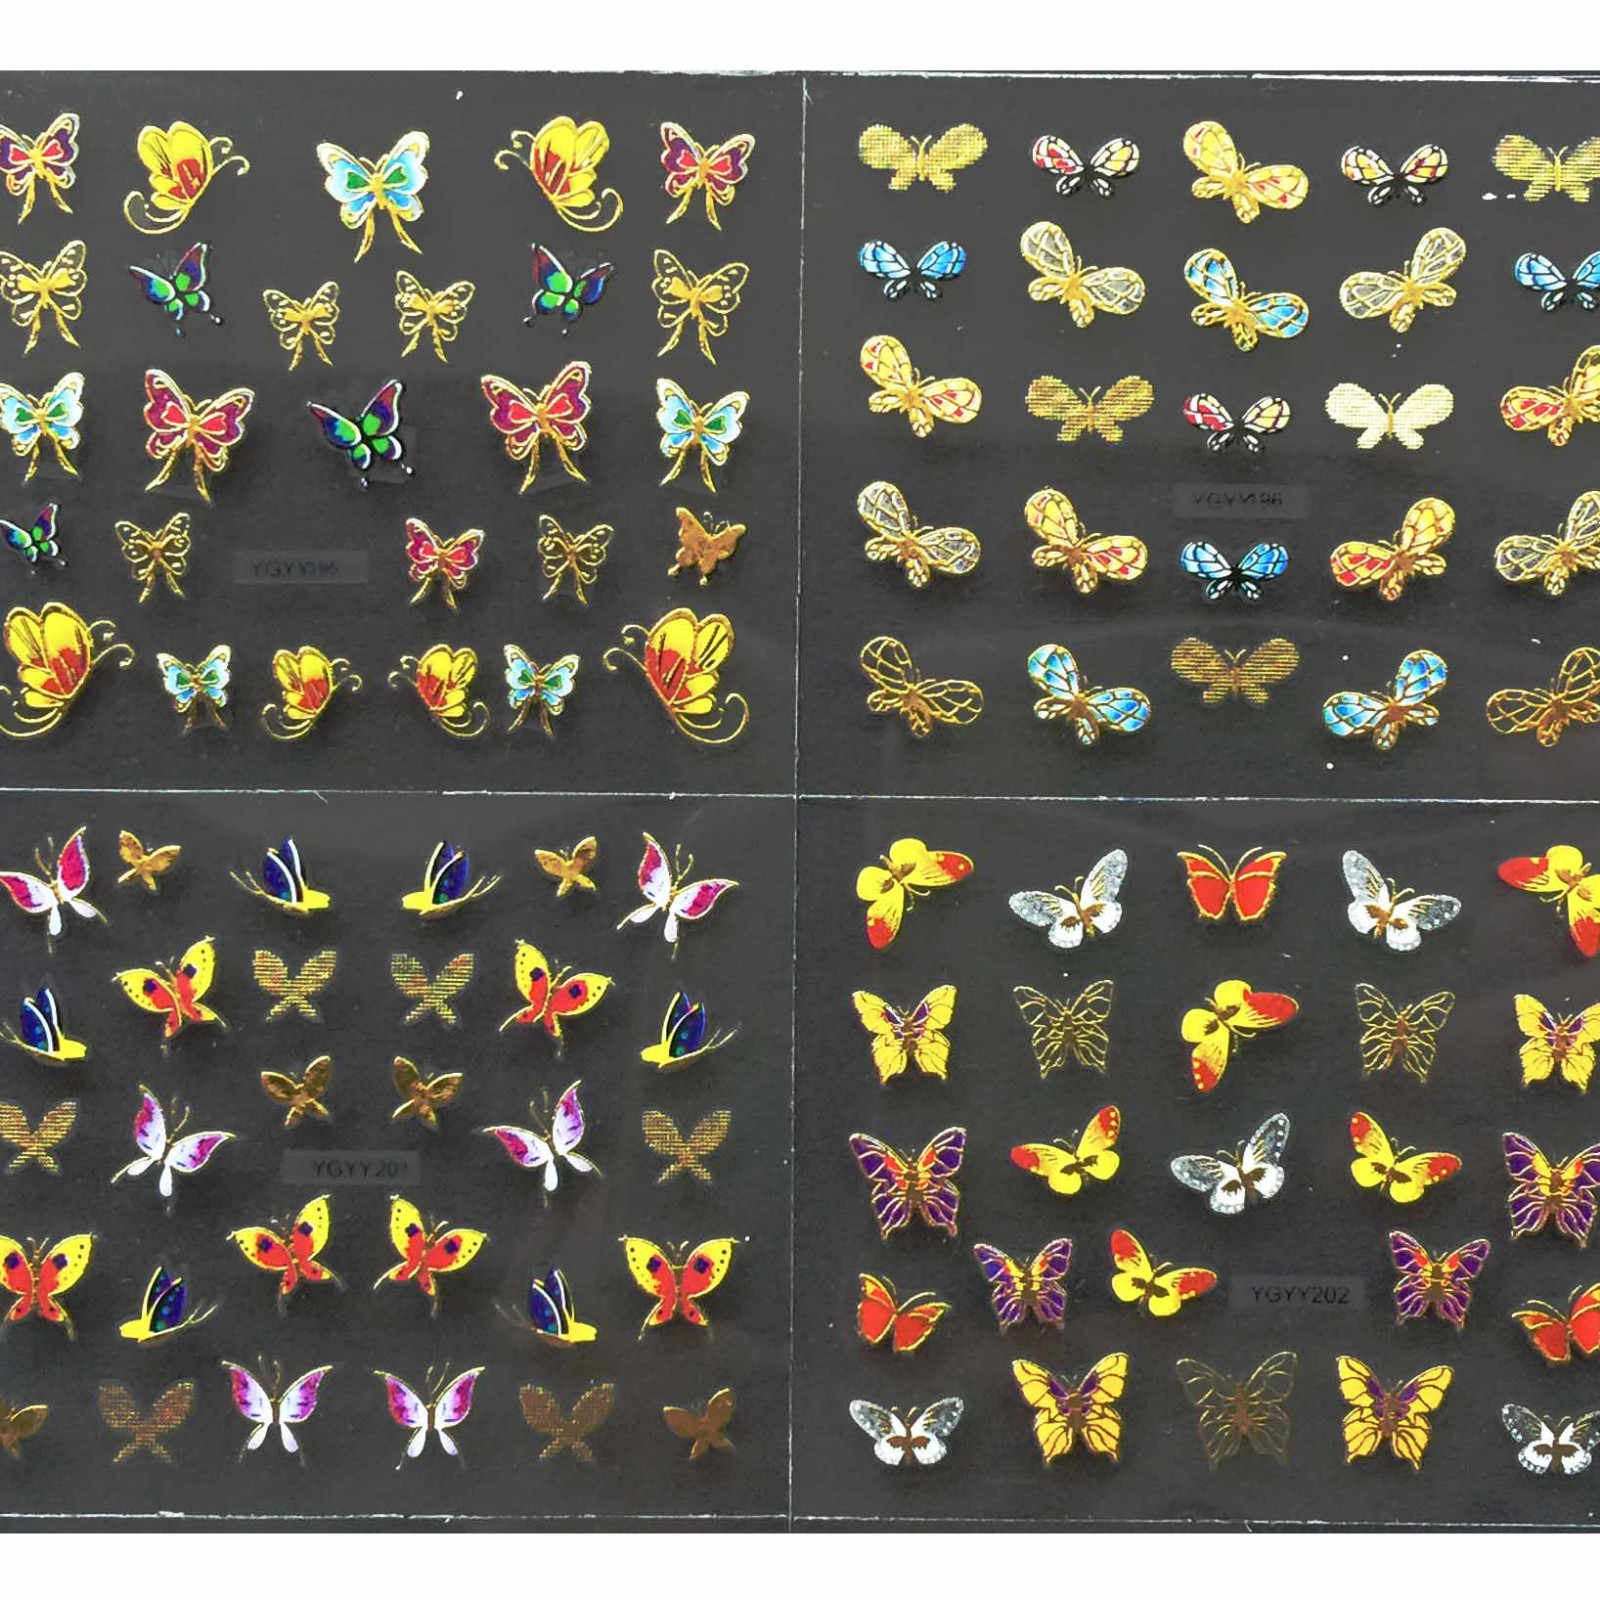 Nail Tools Nail Bronzing 24PCS Nail Art Transfer Stickers 3D Butterfly Manicure Tips Decal Decorations 6.4 x 5.3 cm Oct24